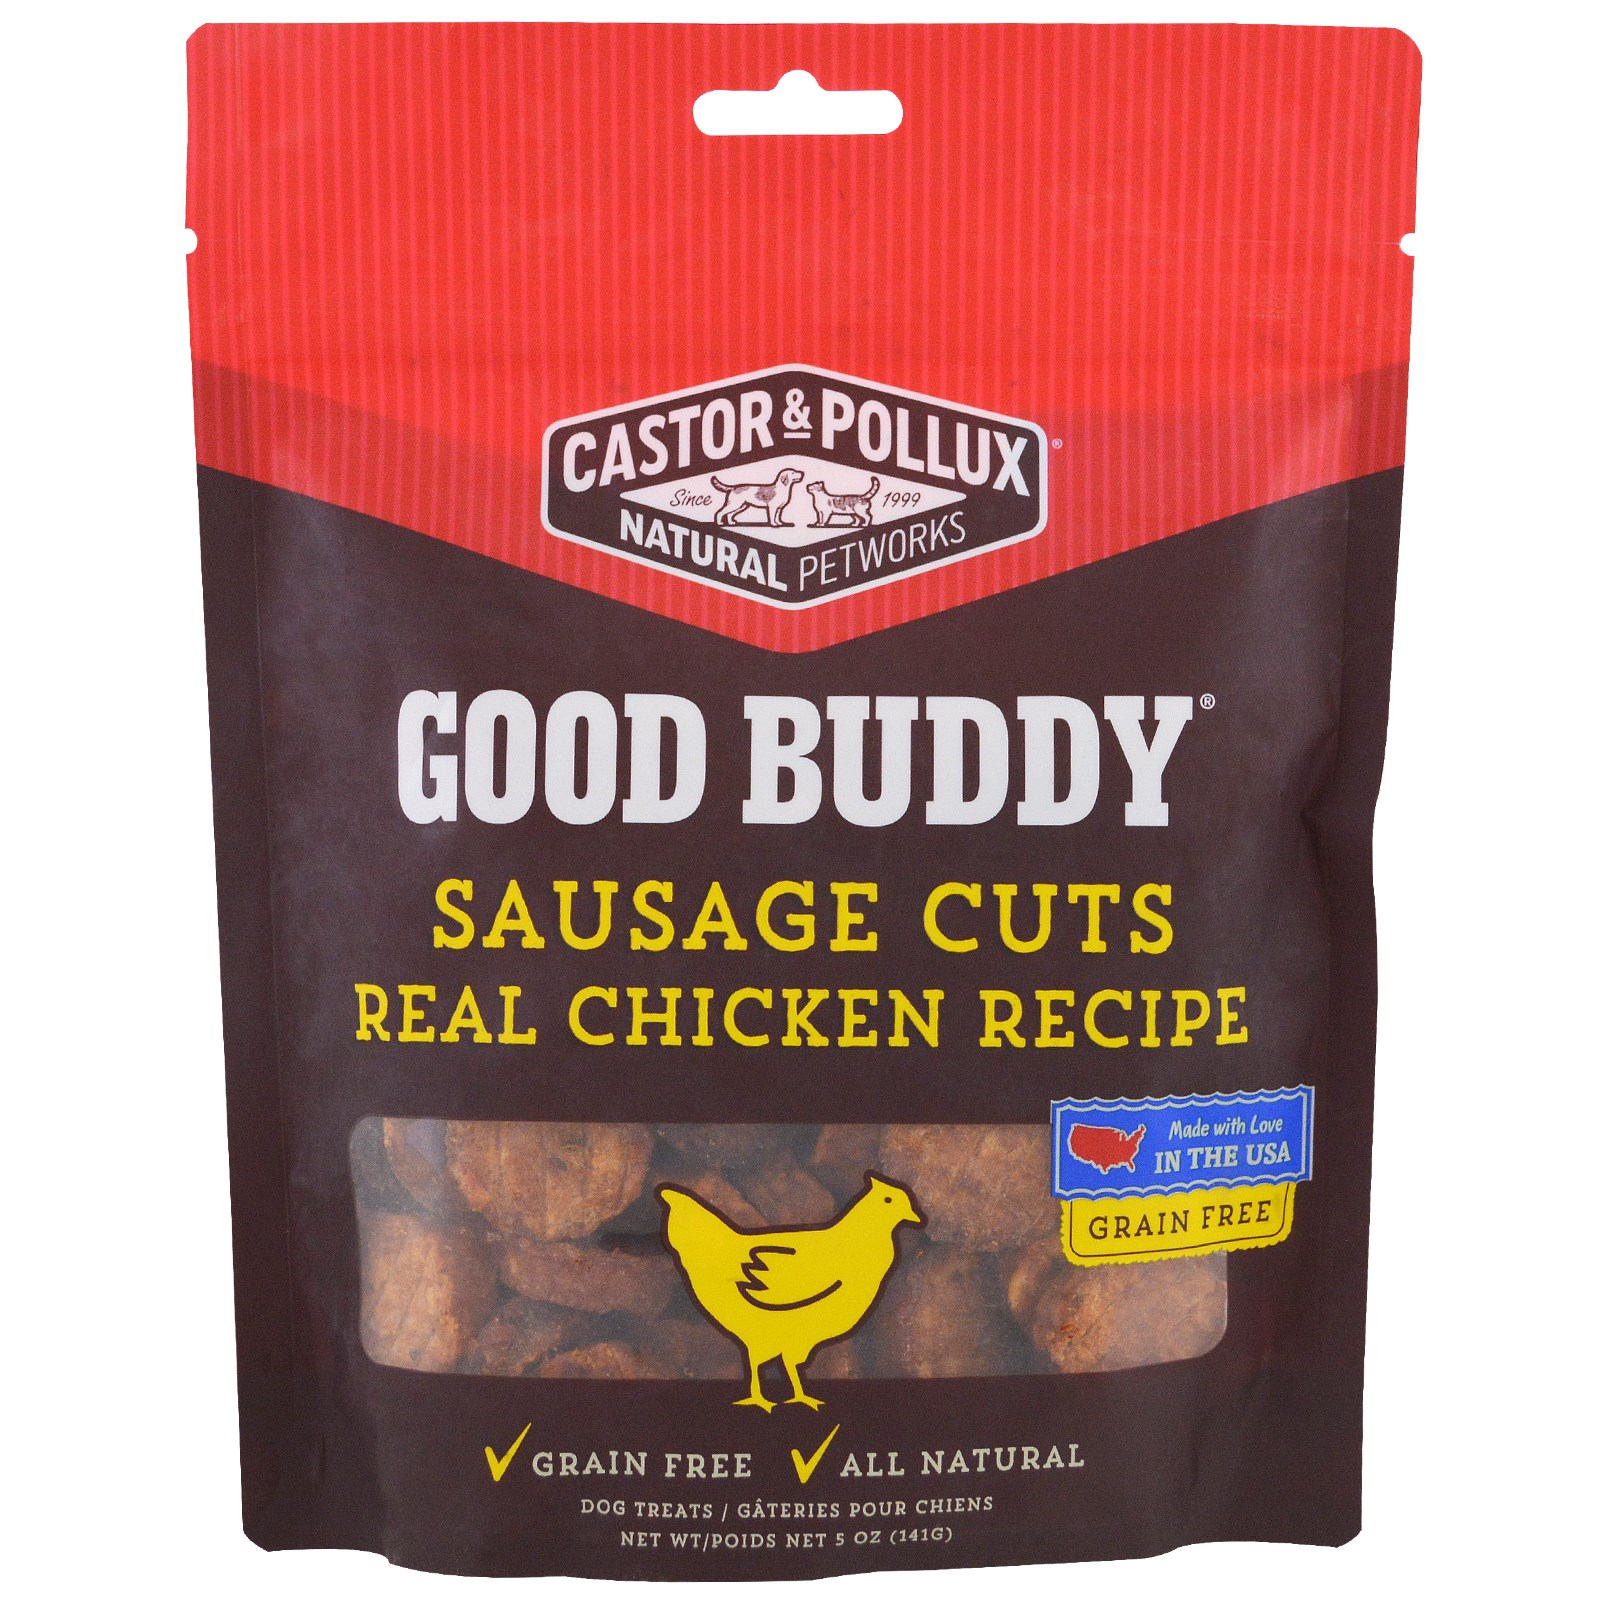 Castor & Pollux, Good Buddy, Sausage Cuts, Real Chicken Recipe, 5 oz (pack of 2)